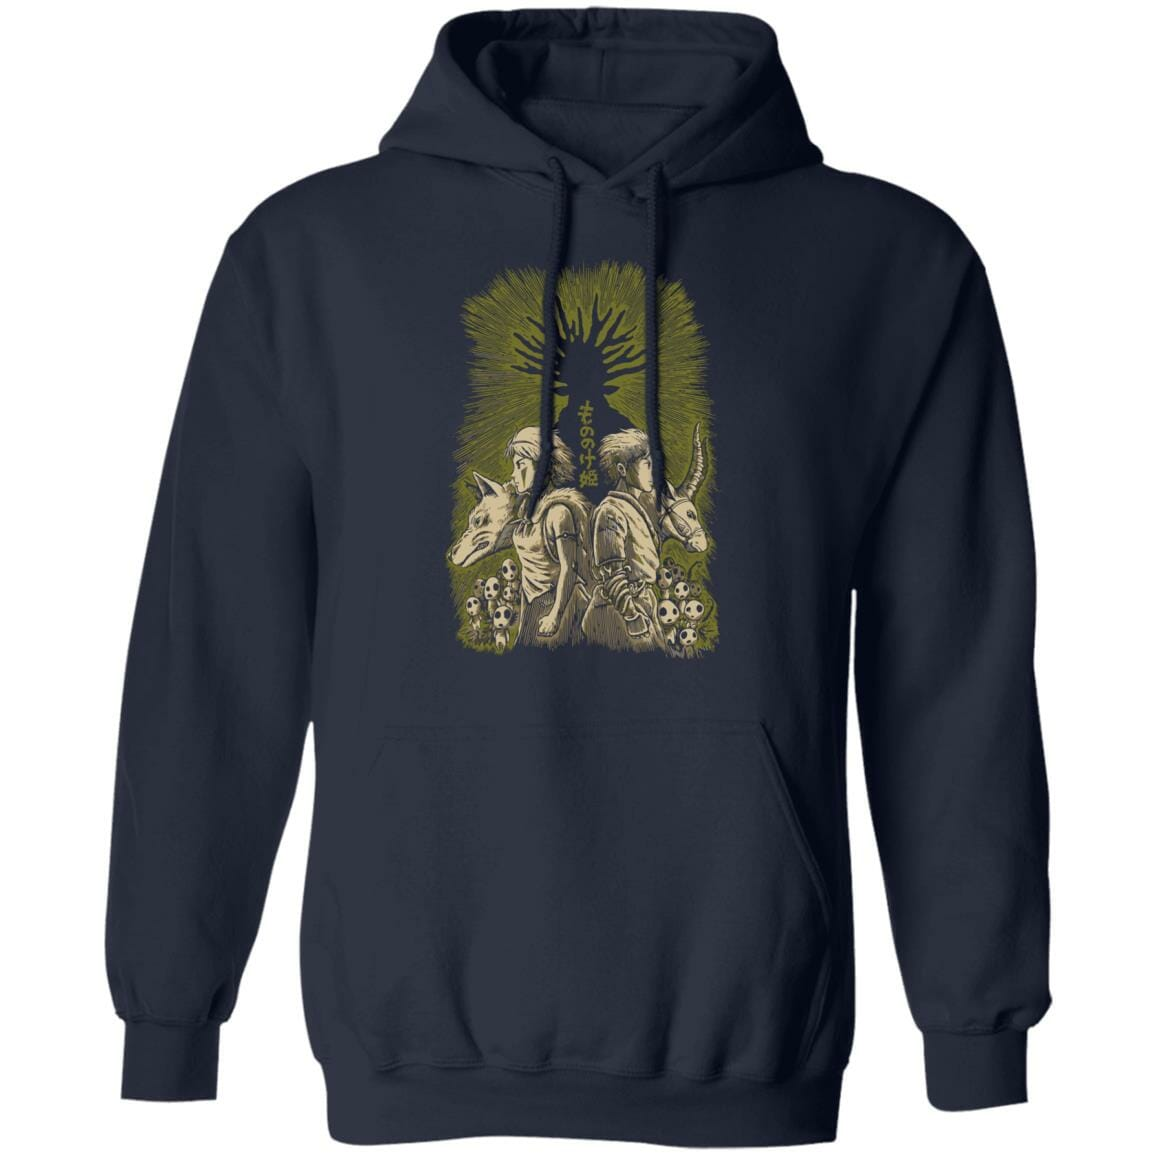 Princess Mononoke – San and Ashitaka Hoodie Unisex